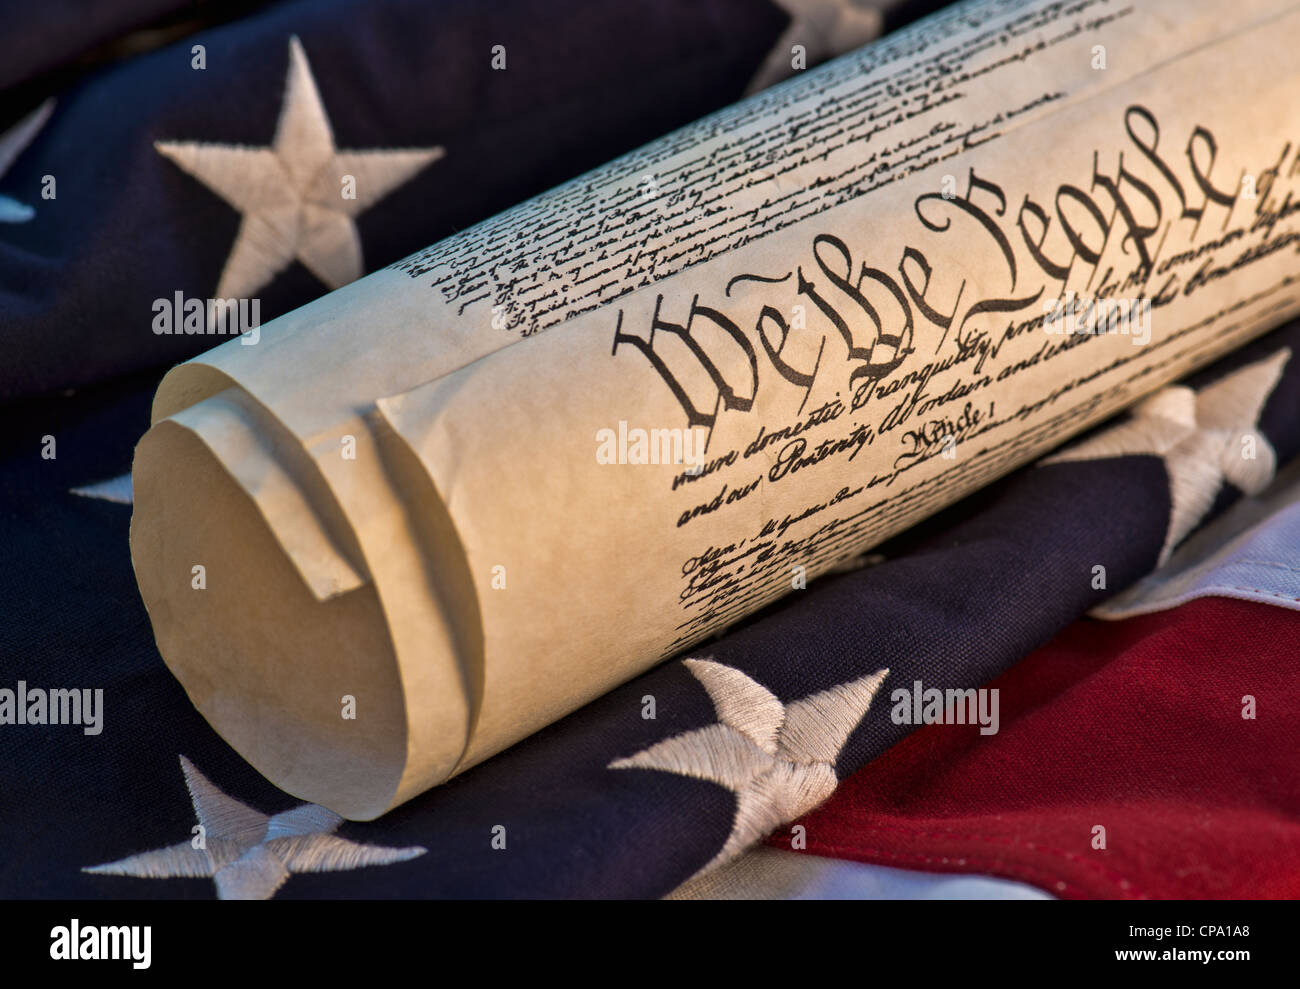 We The People - U.S. Constitution atop an American flag background. - Stock Image